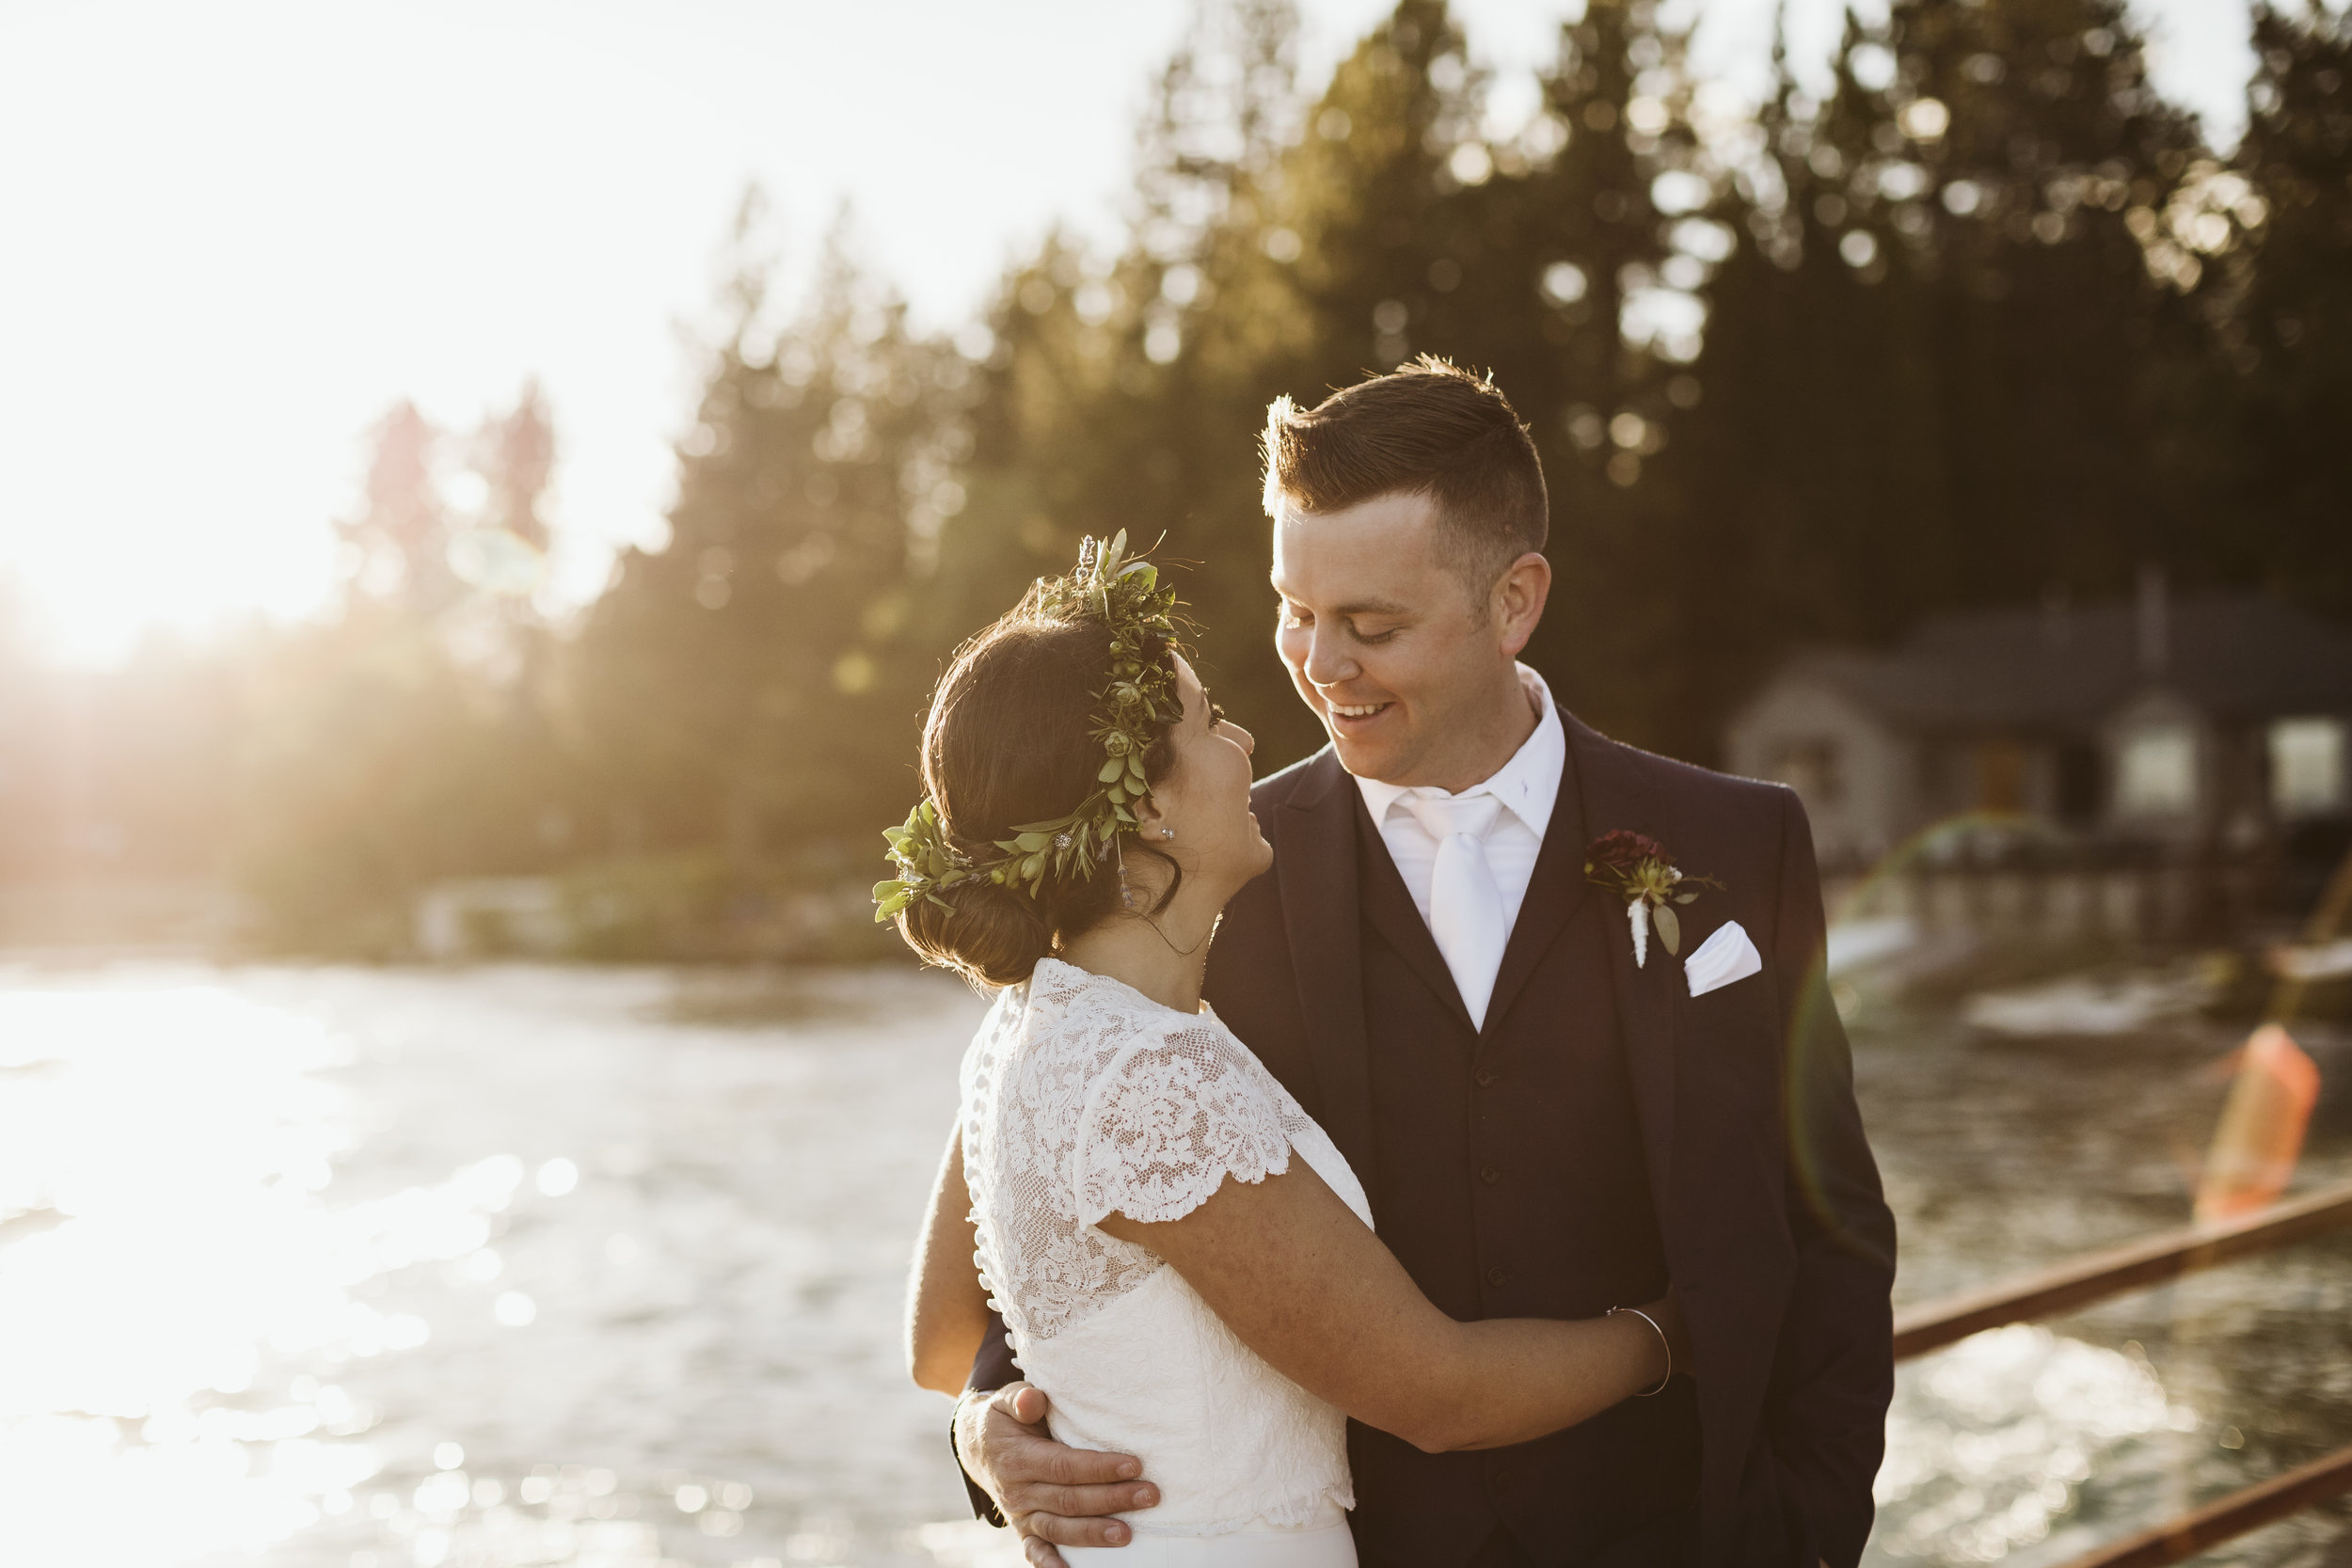 _MG_1840vildphotography-photography-wedding-weddingphotography-tahoewedding-tahoeweddingphotographer-adventurewedding-jake-amy.jpg